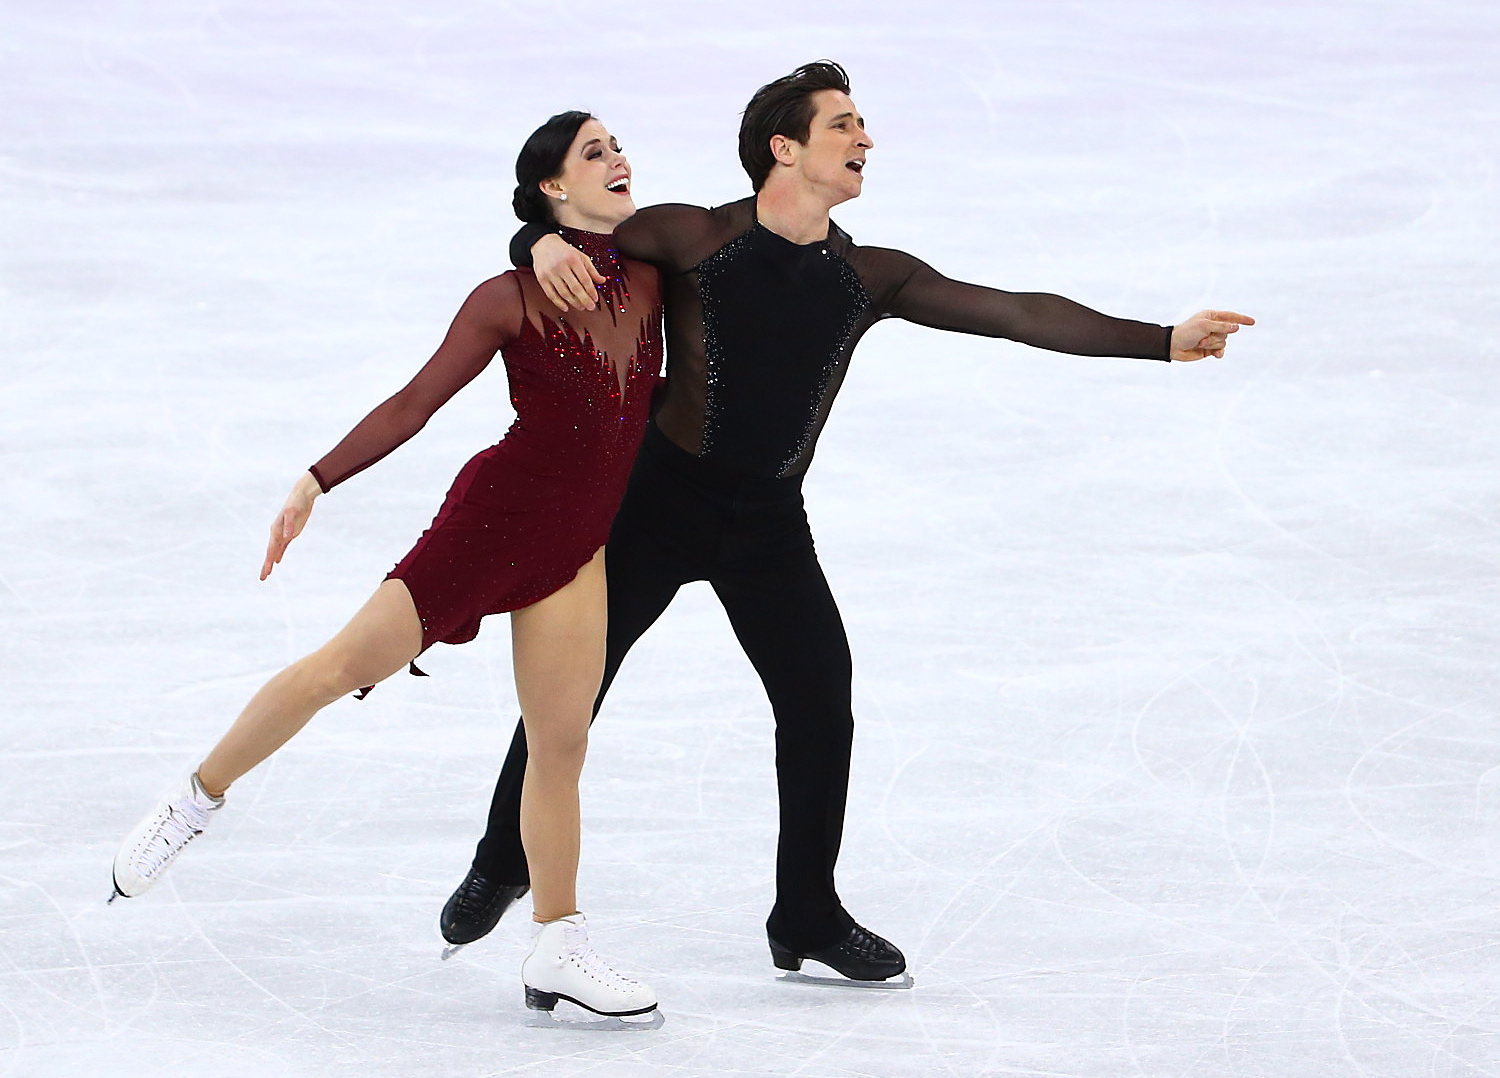 Tessa Virtue and Scott Moir skating during their gold medal Olympic performance.